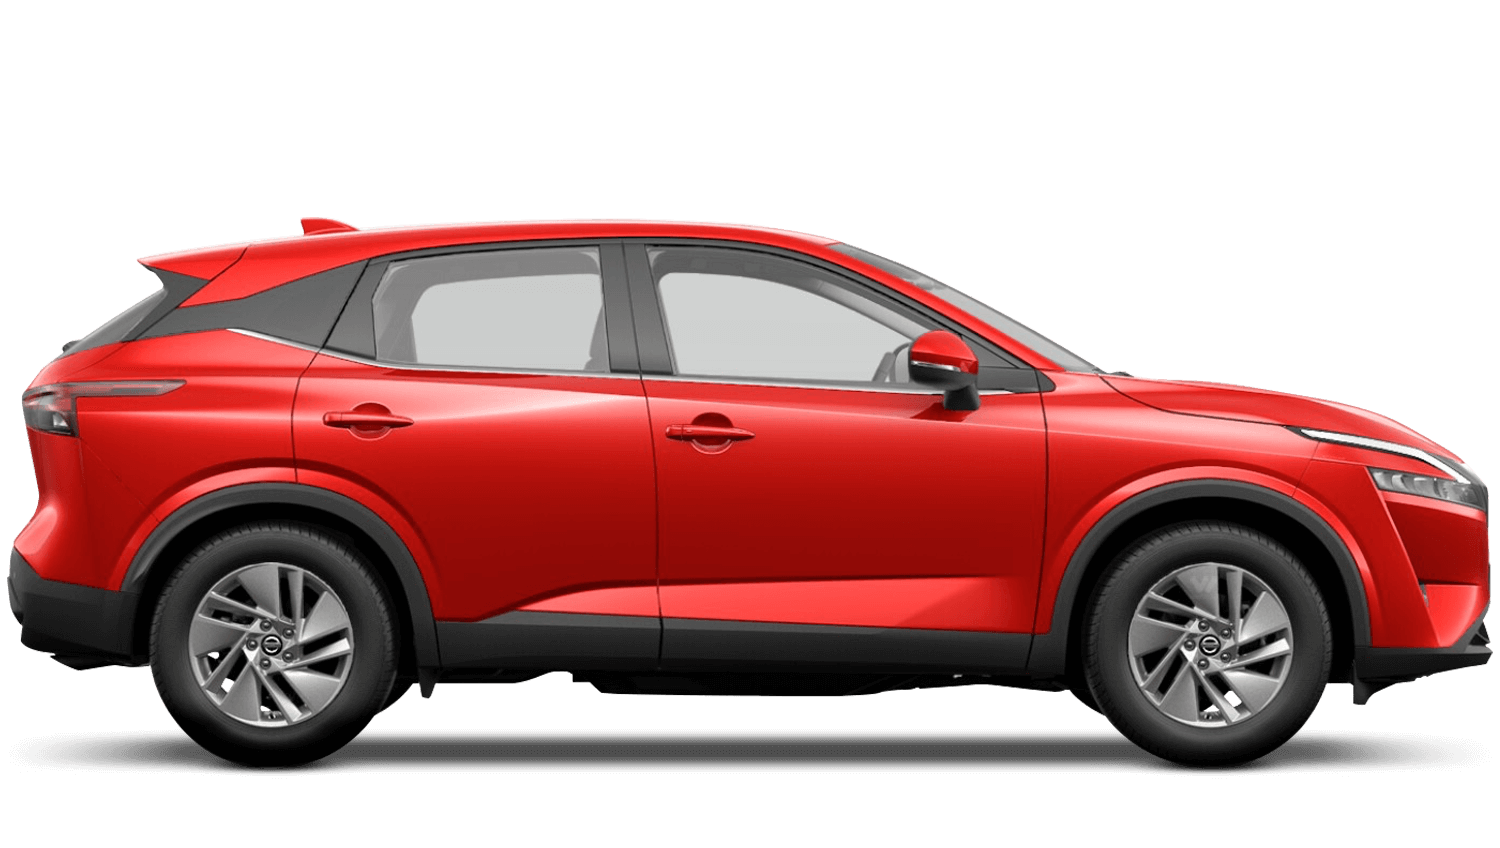 Flame Red All-New Nissan Qashqai